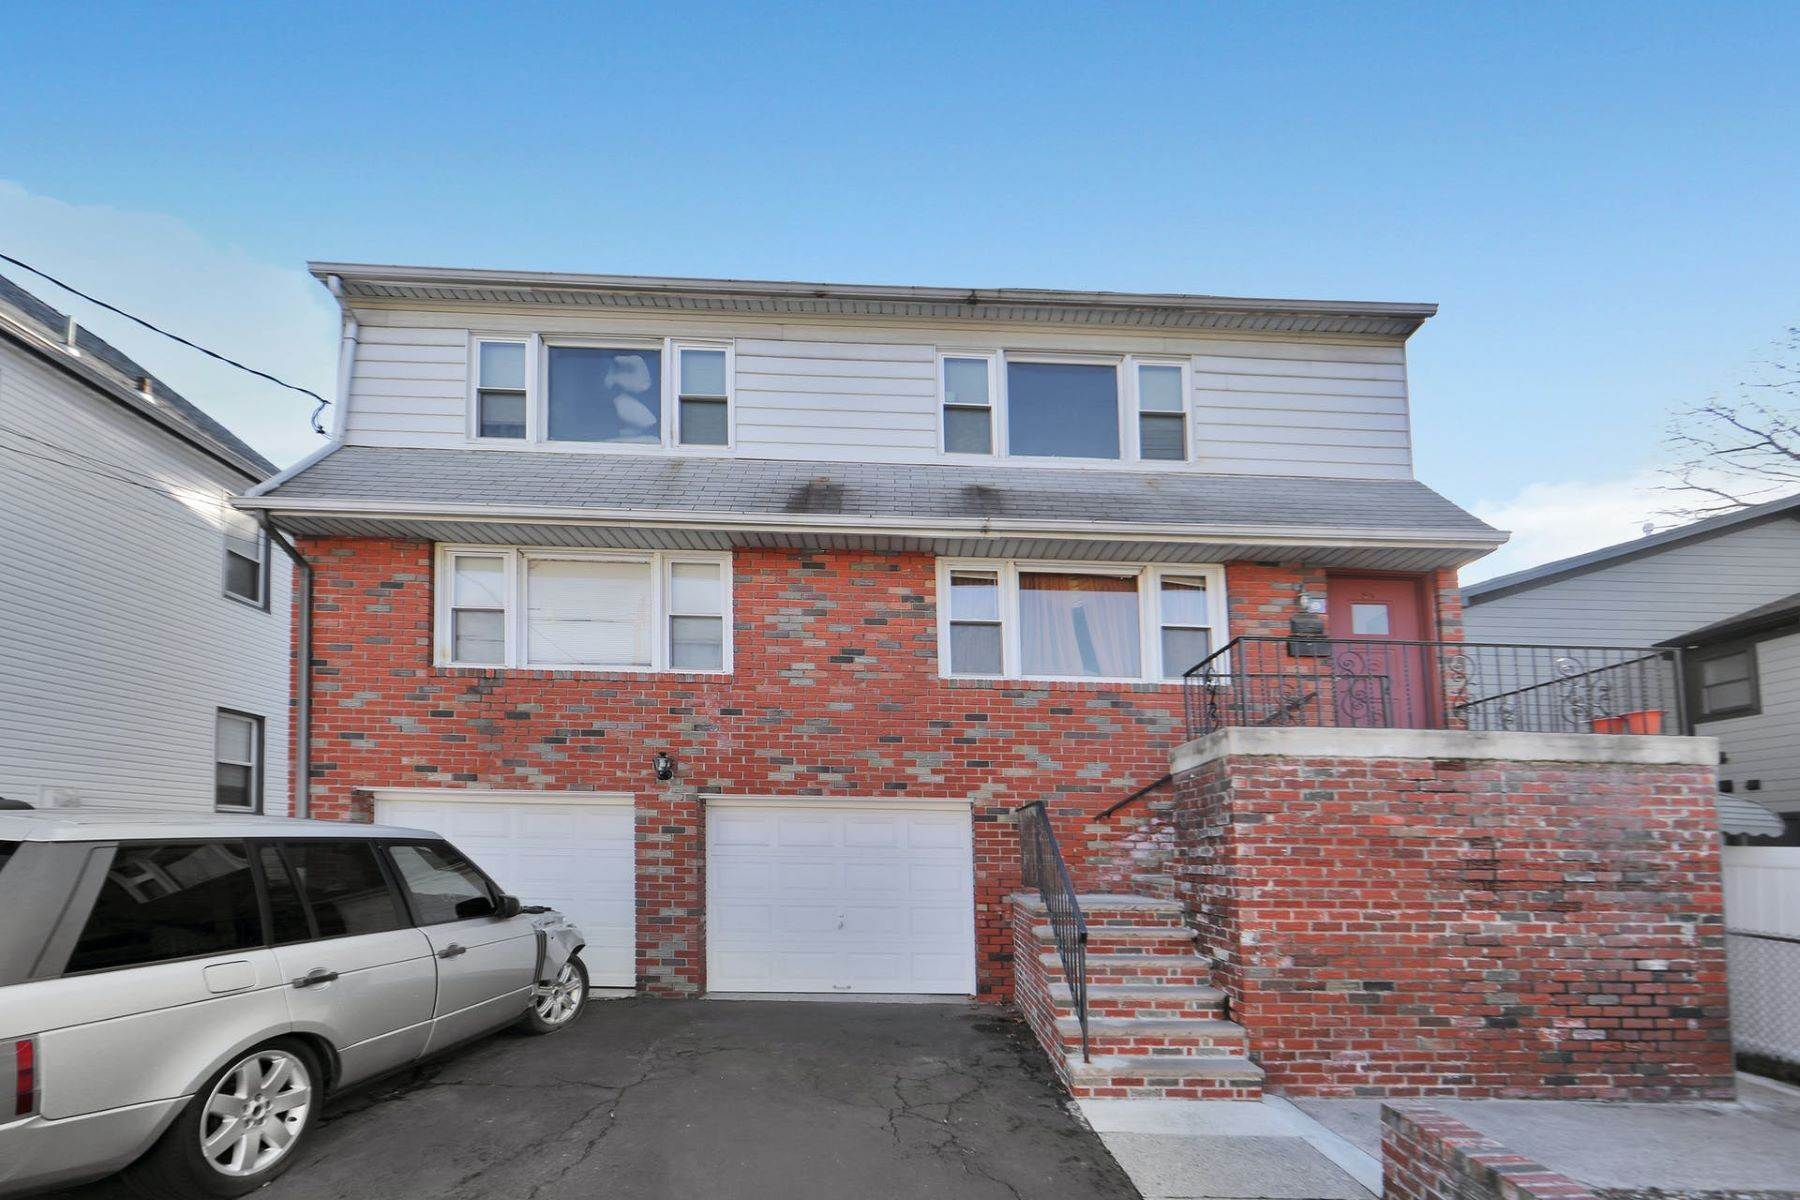 Multi-Family Homes for Sale at Great Opportunity! 53 Ridgewood Ave Ridgefield Park, New Jersey 07660 United States